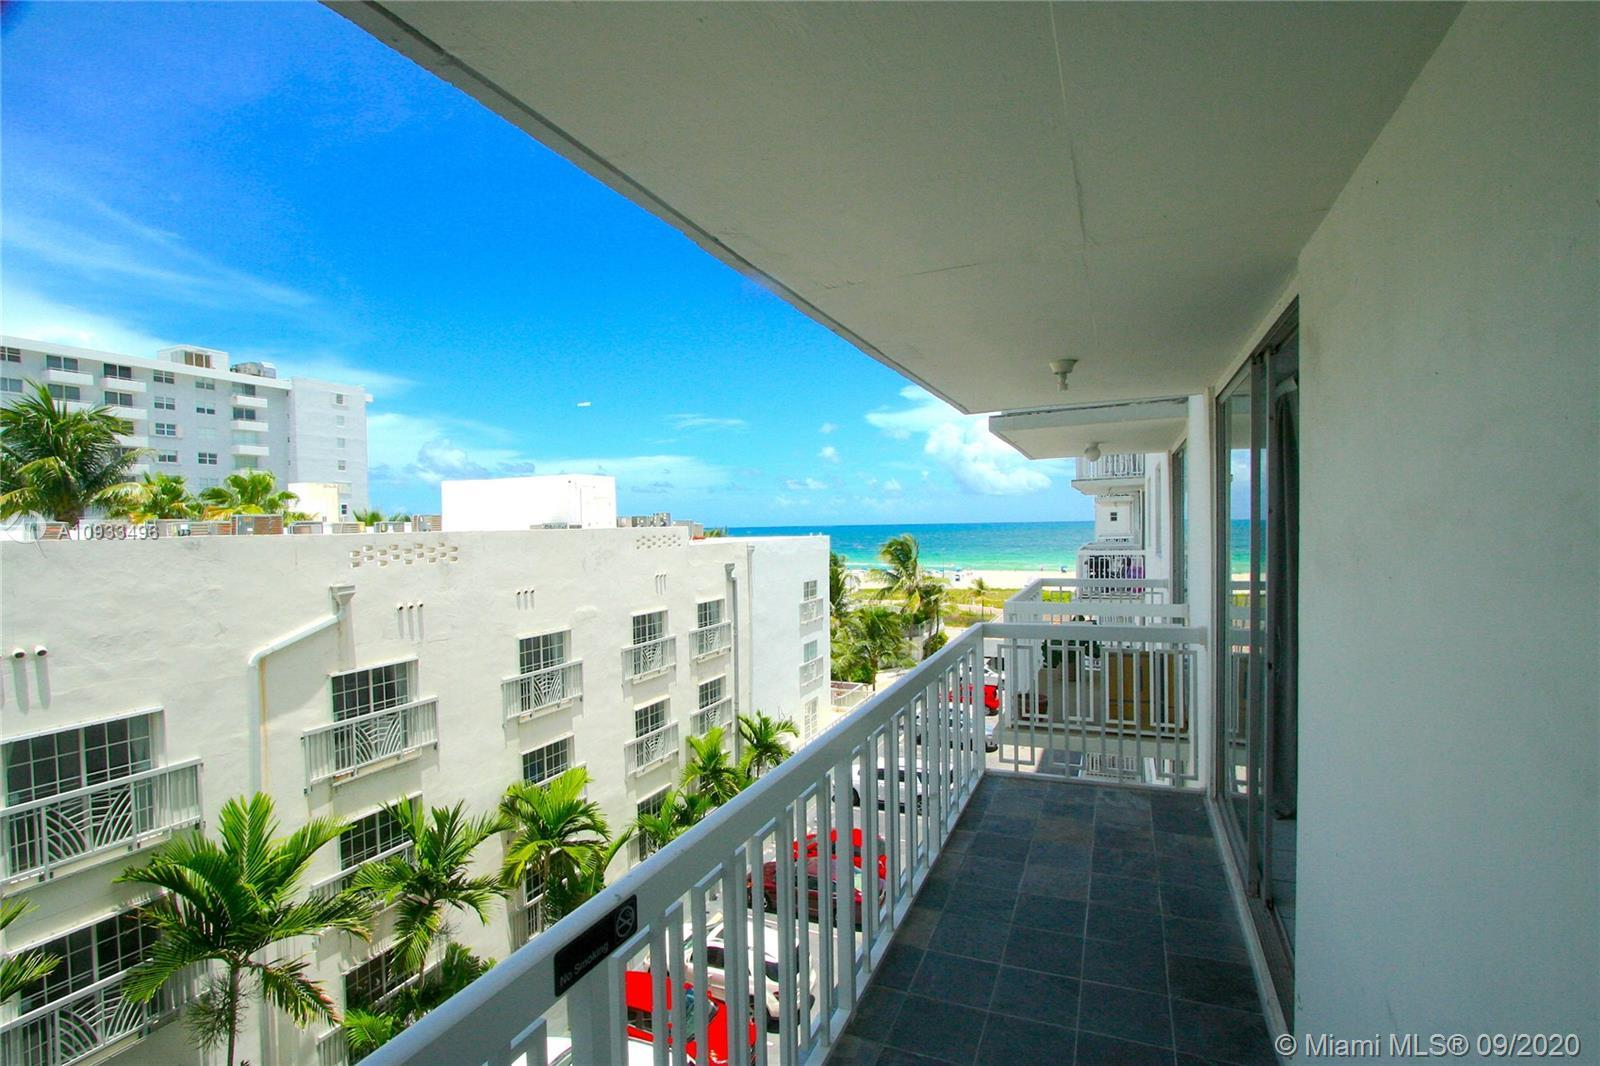 THE BEST PRICED OCEANFRONT 2BR CONDO IN SOUTH BEACH.  THIS IS THE PERFECT CONDO TO LIVE IN OR RENT O